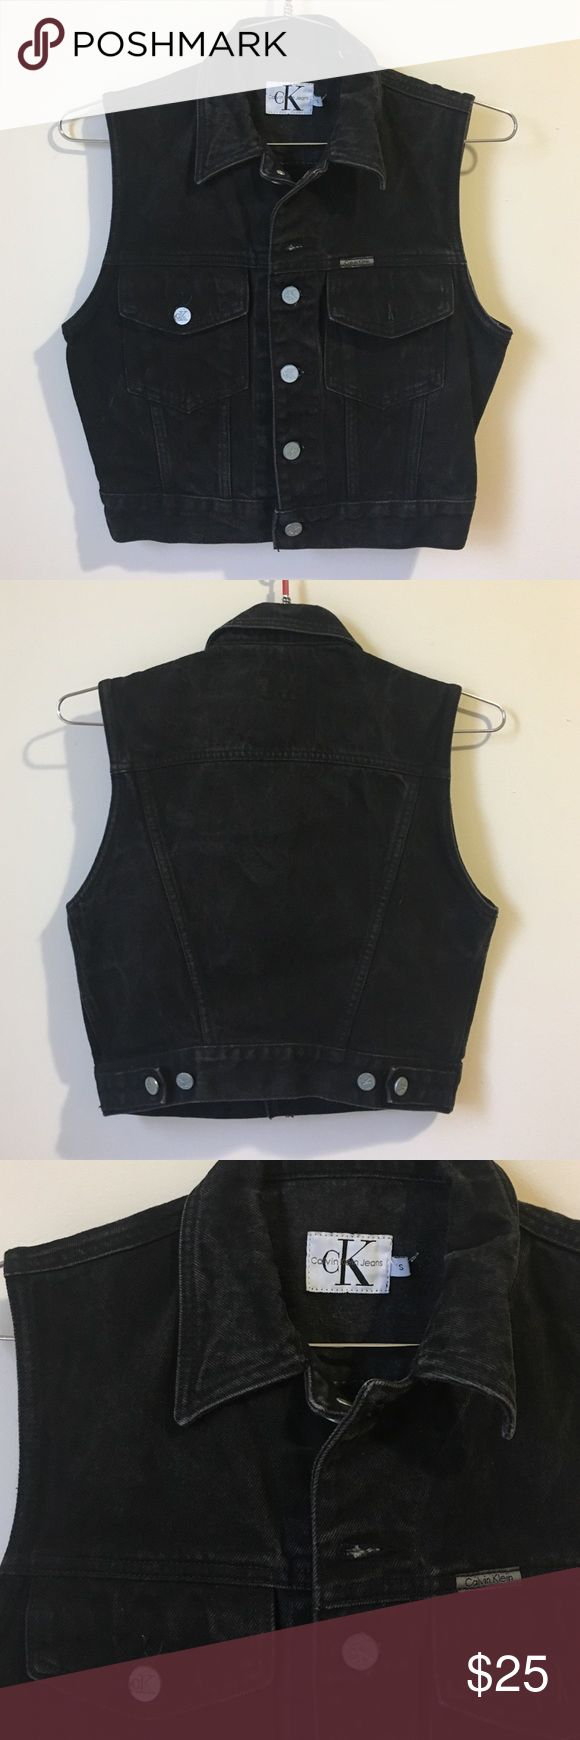 • Calvin Klein CK black Jean Vest size S• Great condition. Black faded jean vest. 100% cotton. No trades. Calvin Klein Jeans Jackets & Coats Vests